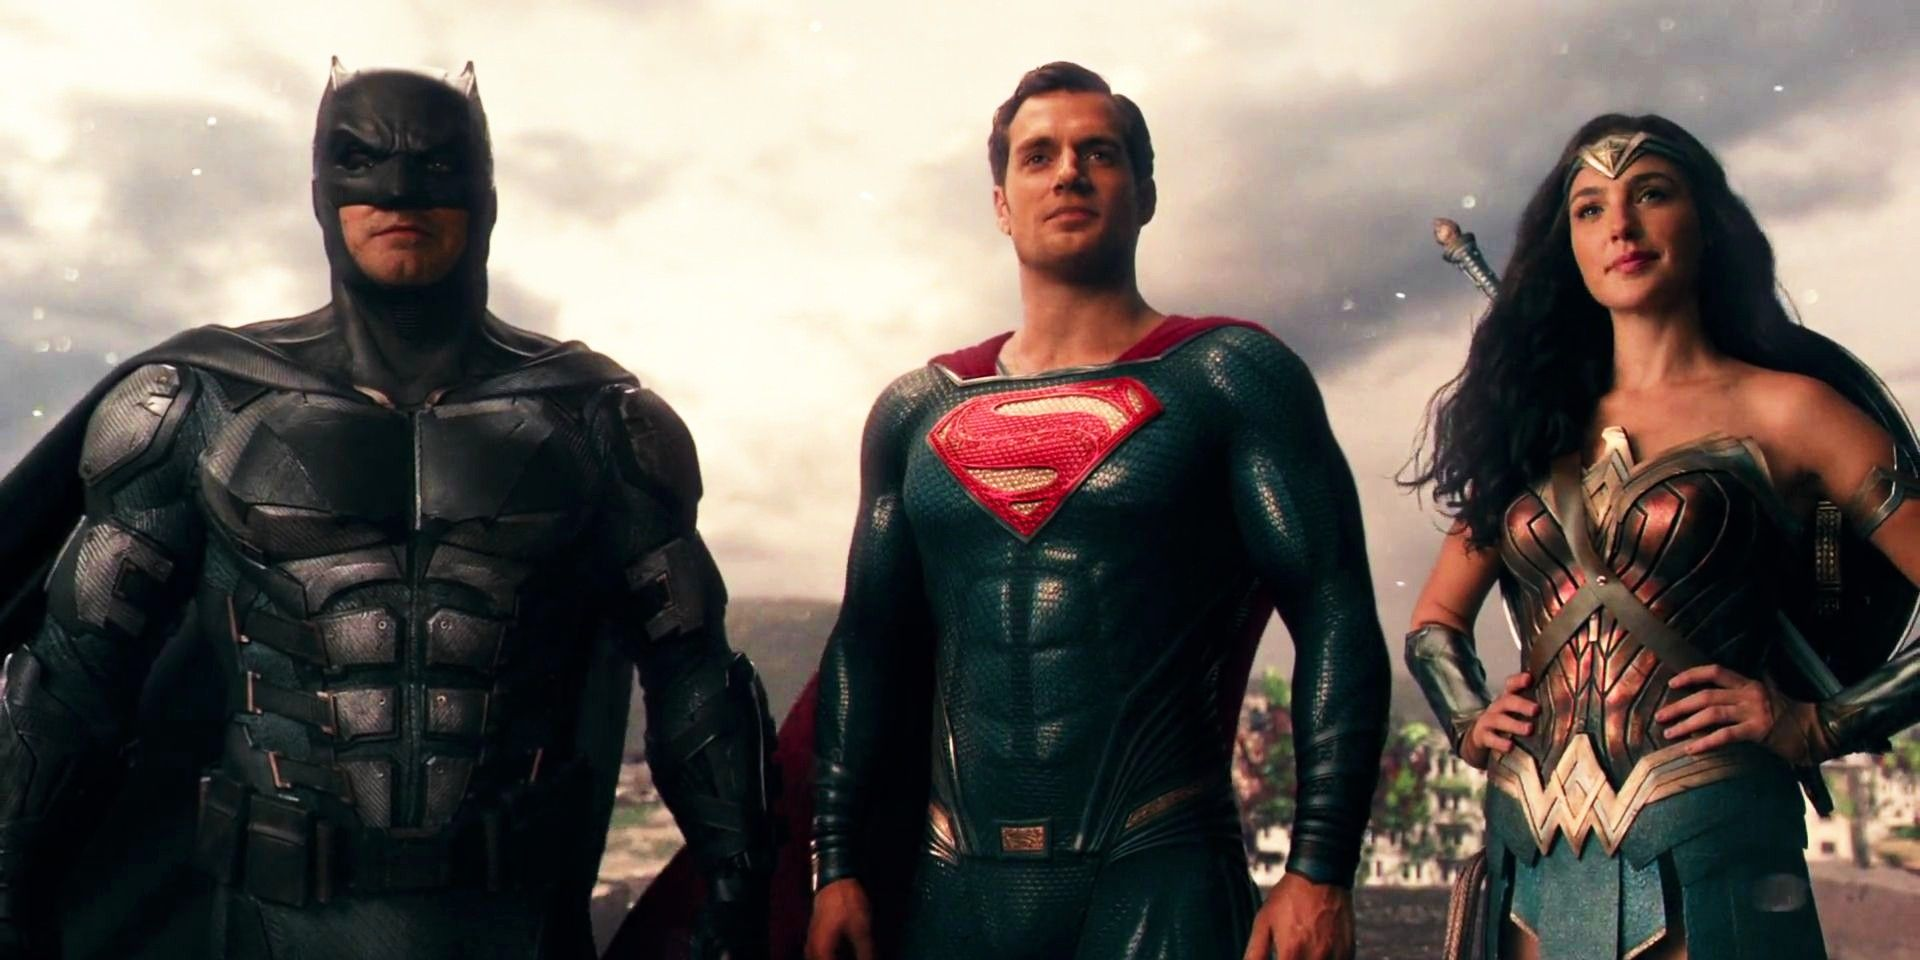 Zack Snyder Hasn't Spoiled Justice League With His Images